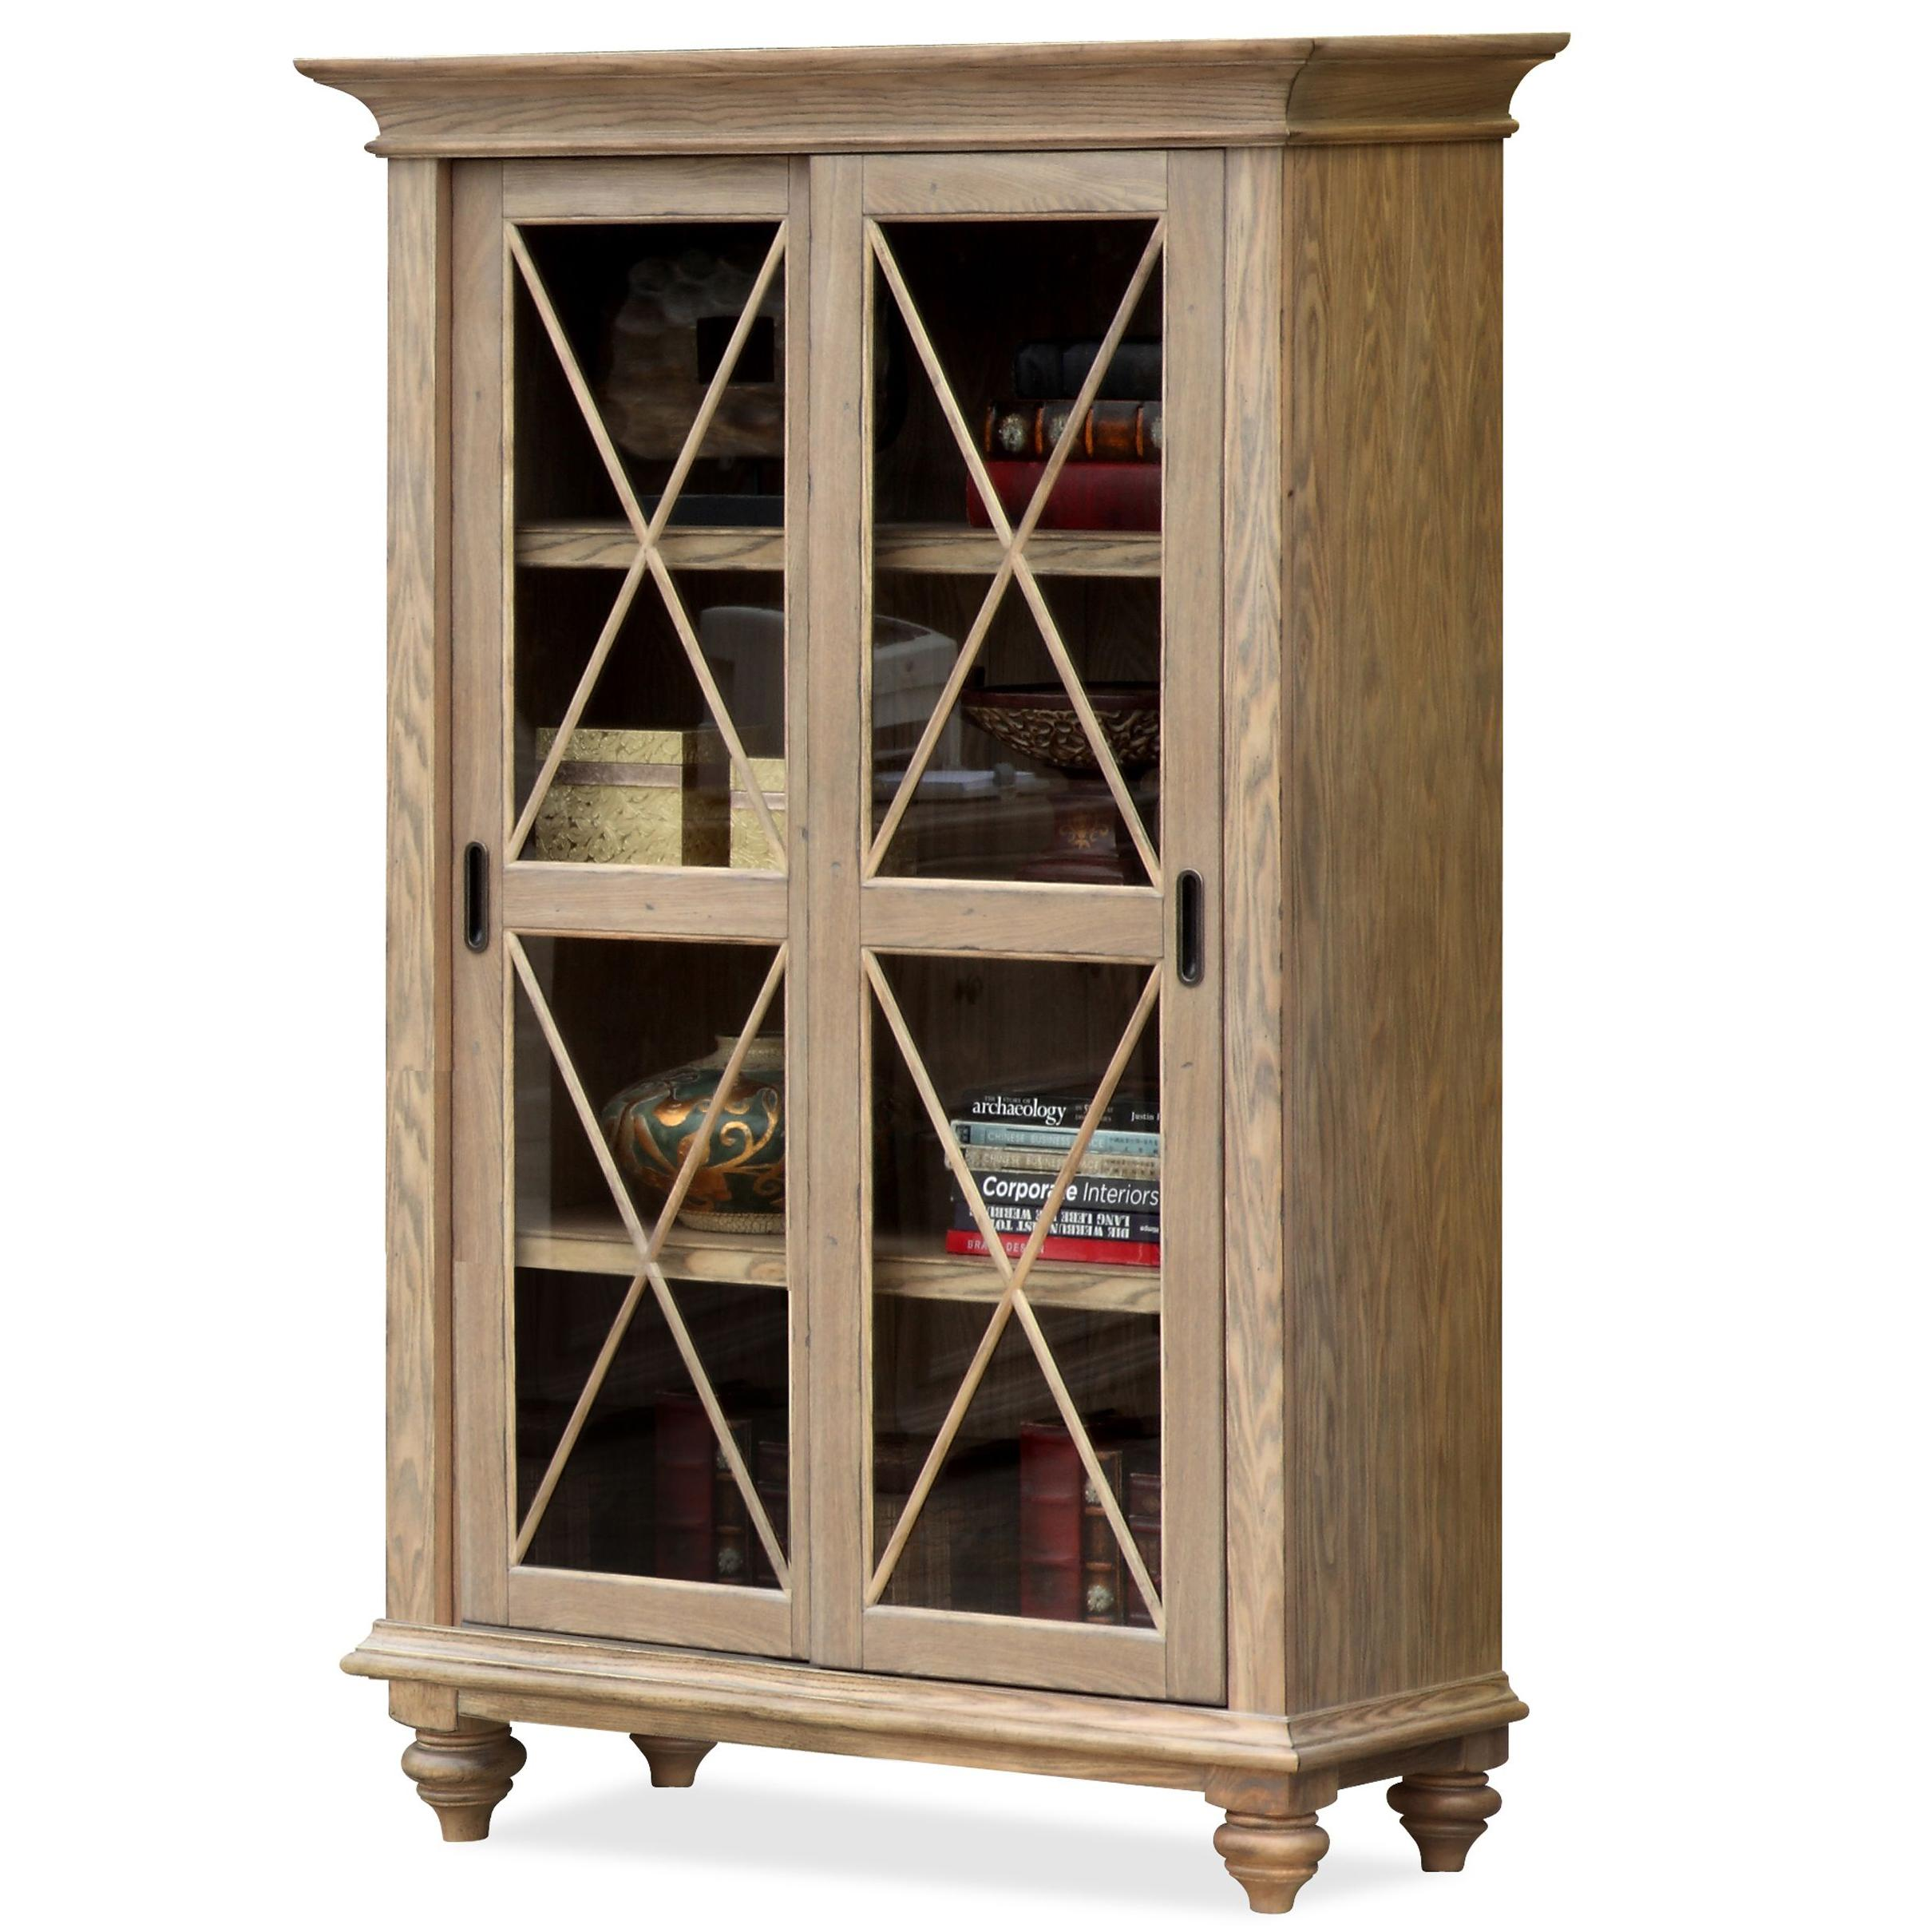 awesome lovely glass danish door bookcase furniture bookcases white mannheim southern mahogany enterprises cabinet single display barrister sliding of